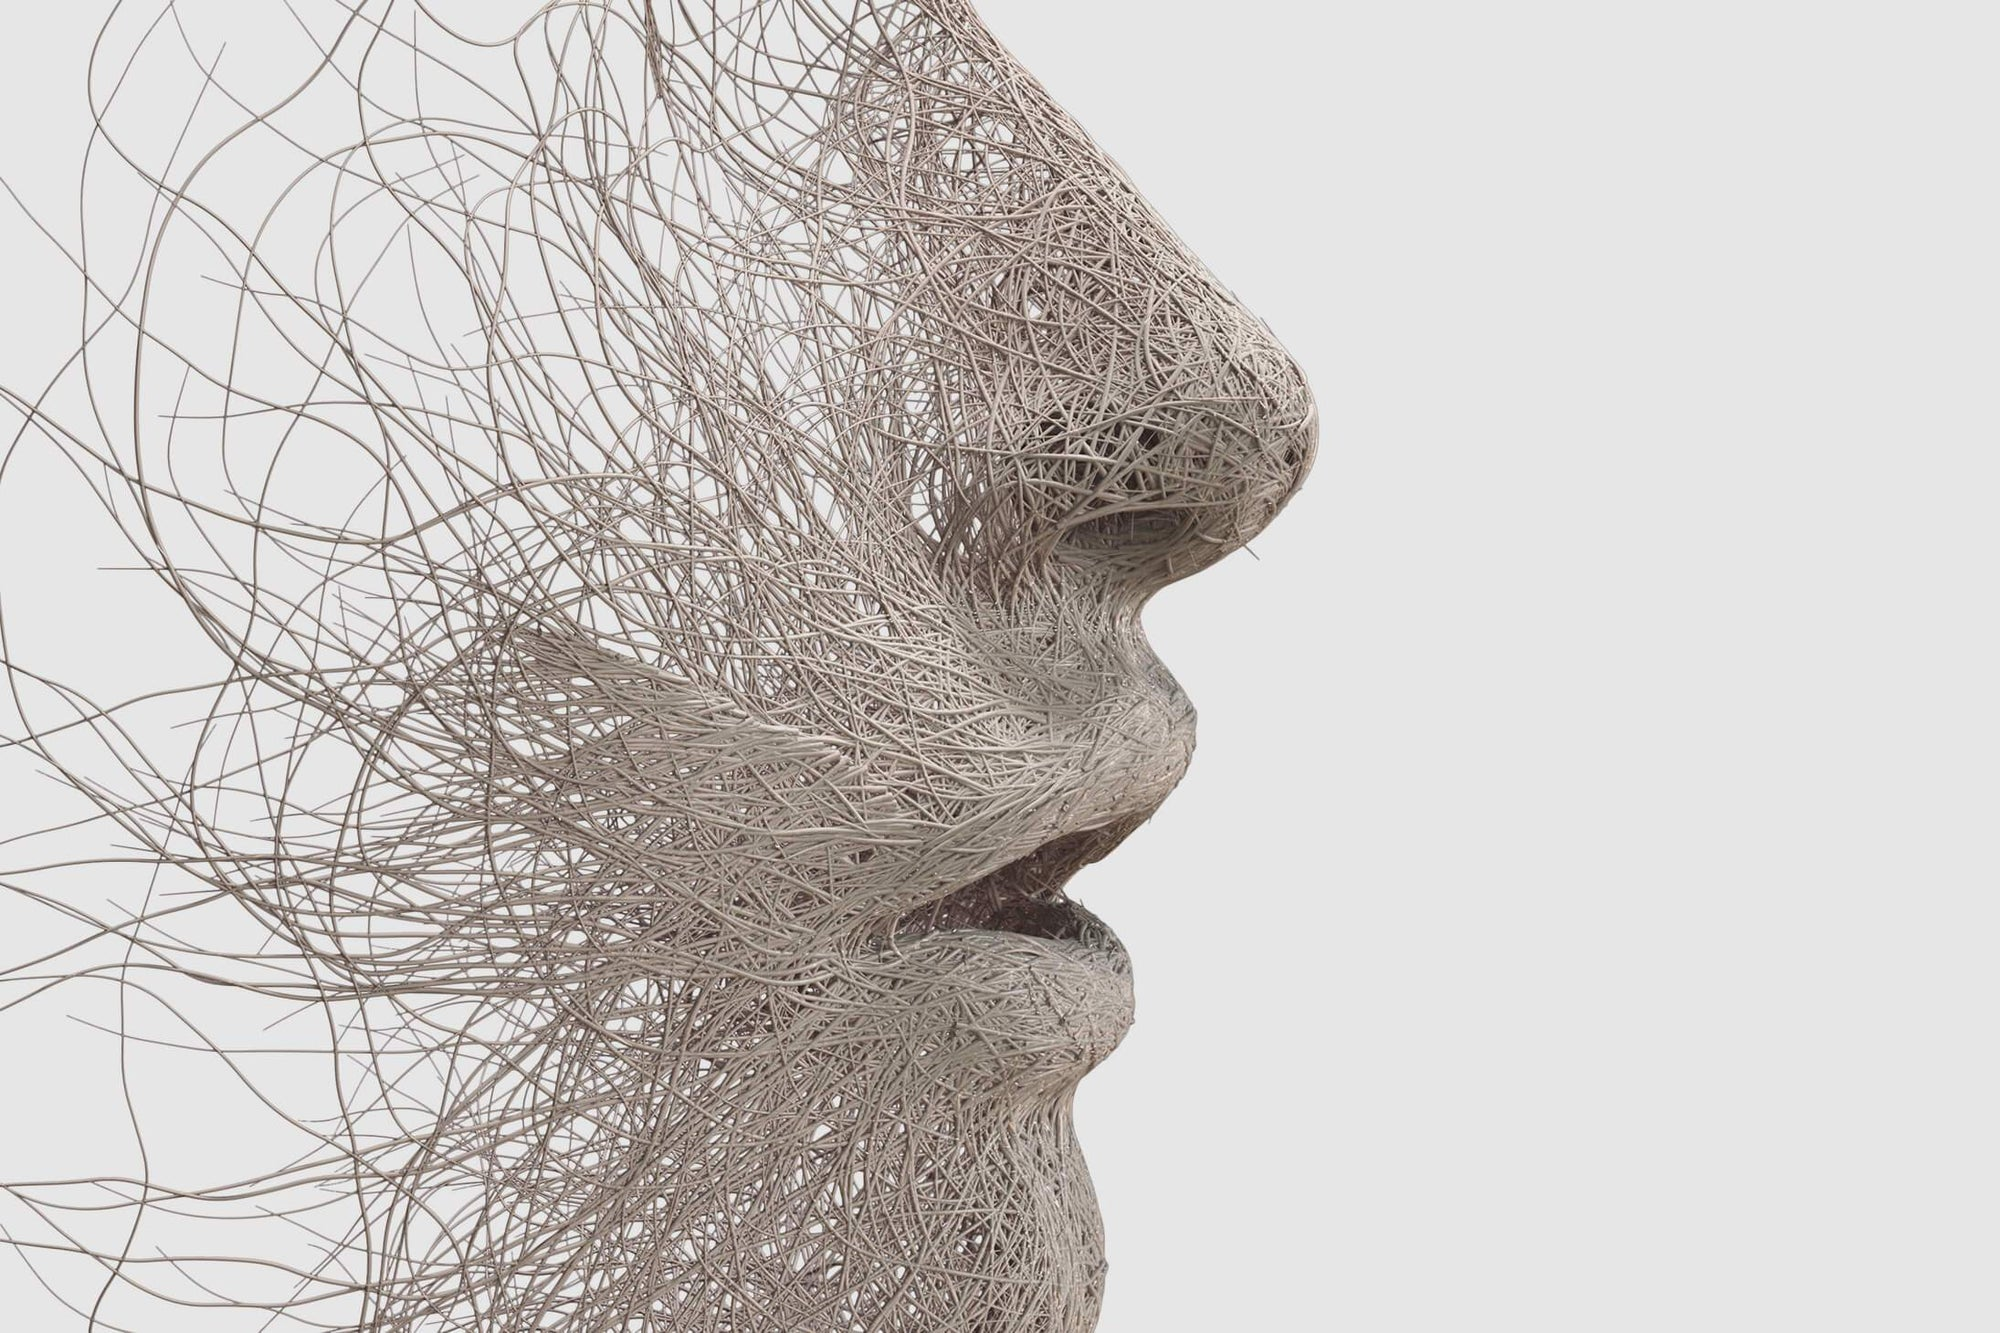 Image of fibers forming a human face taking a deep breath